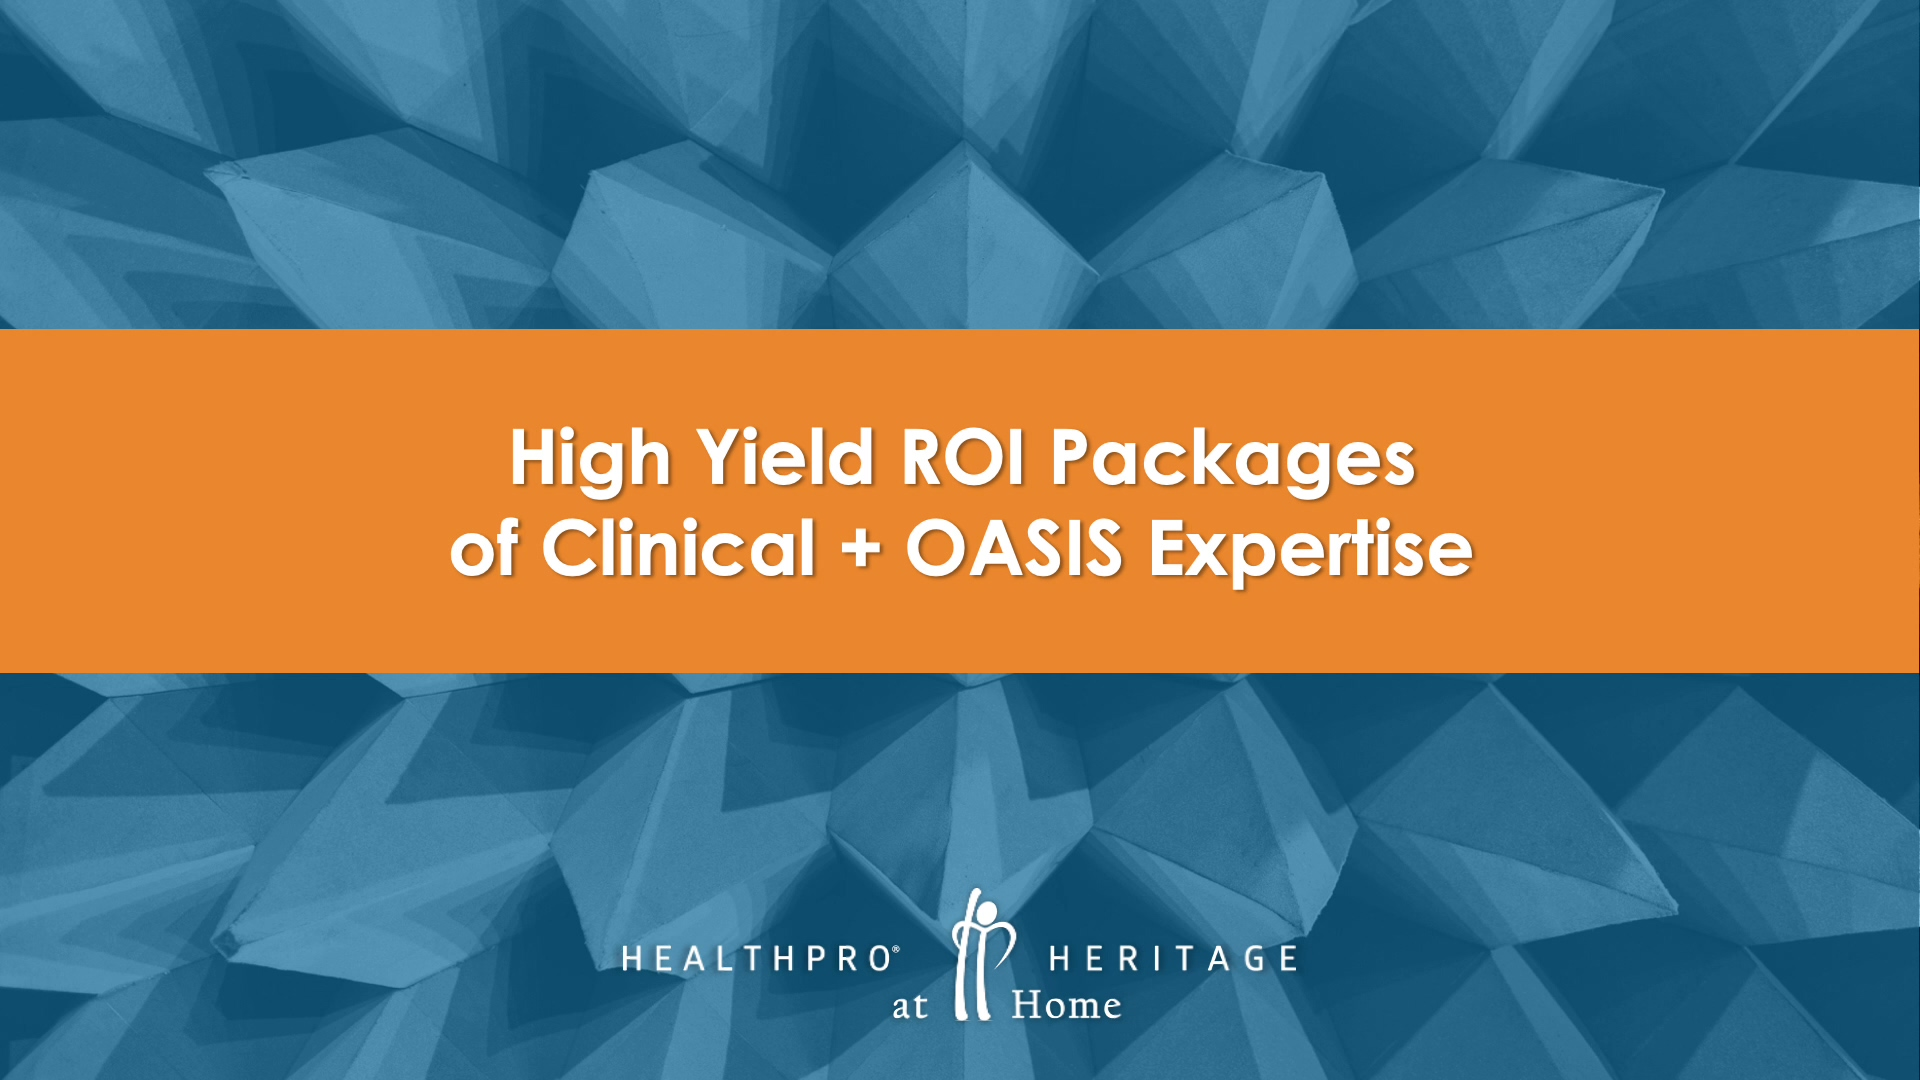 HealthPRO Heritage at Home - Clinical + OASIS Expertise